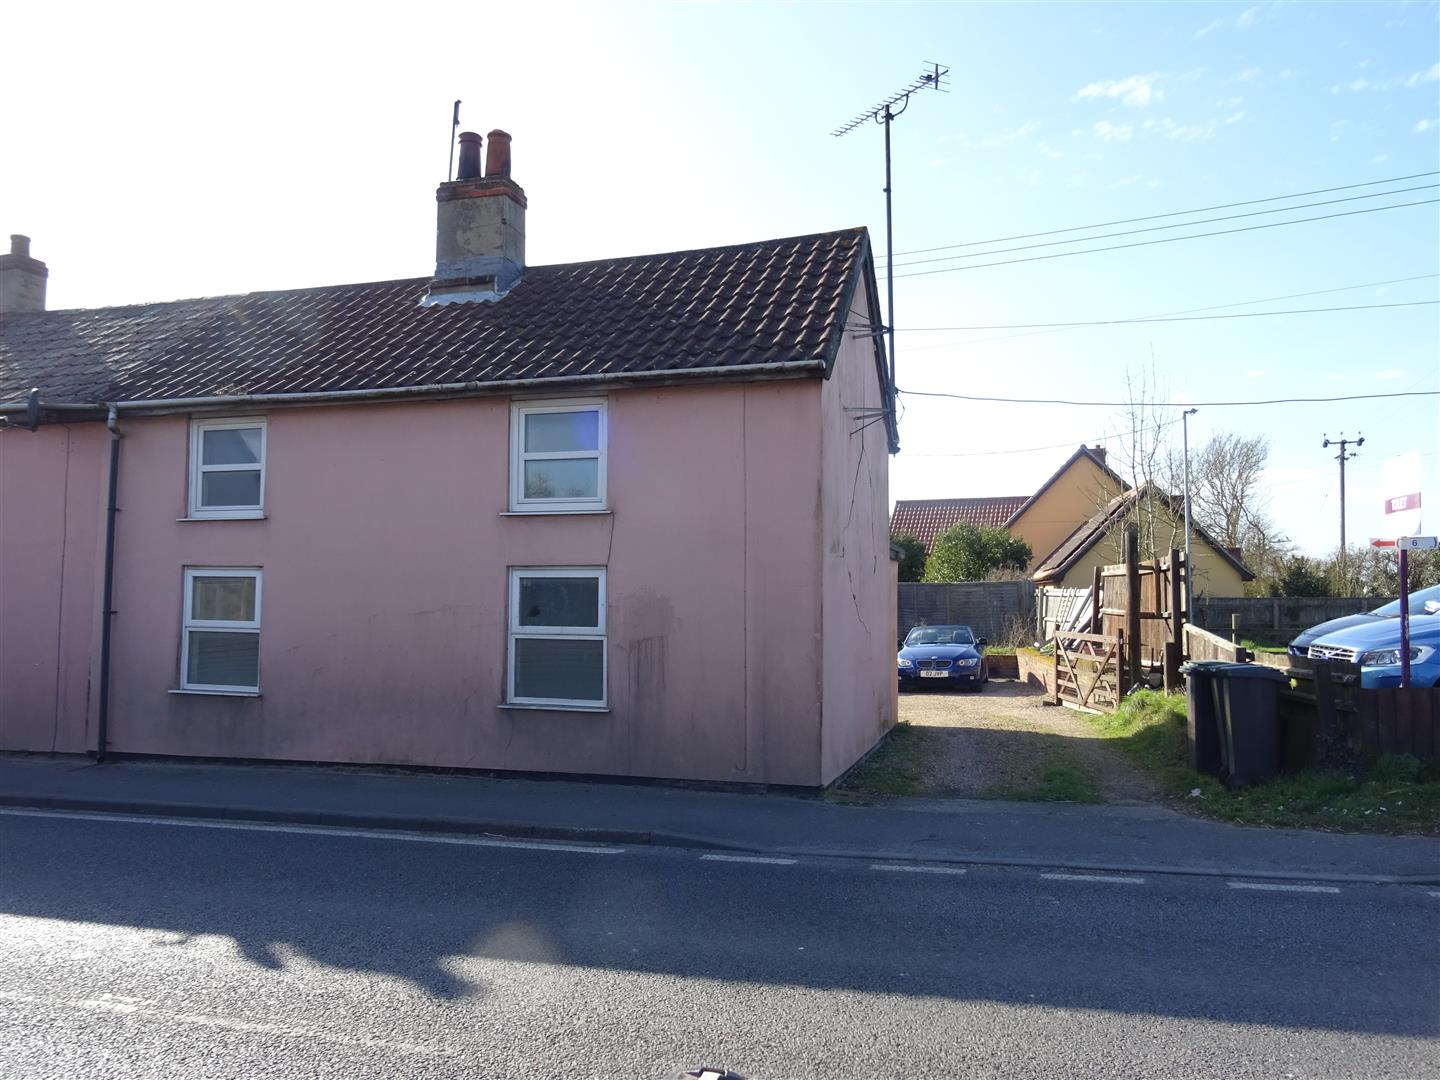 Pains Hill, Little Stonham, Stowmarket, IP14 5JH